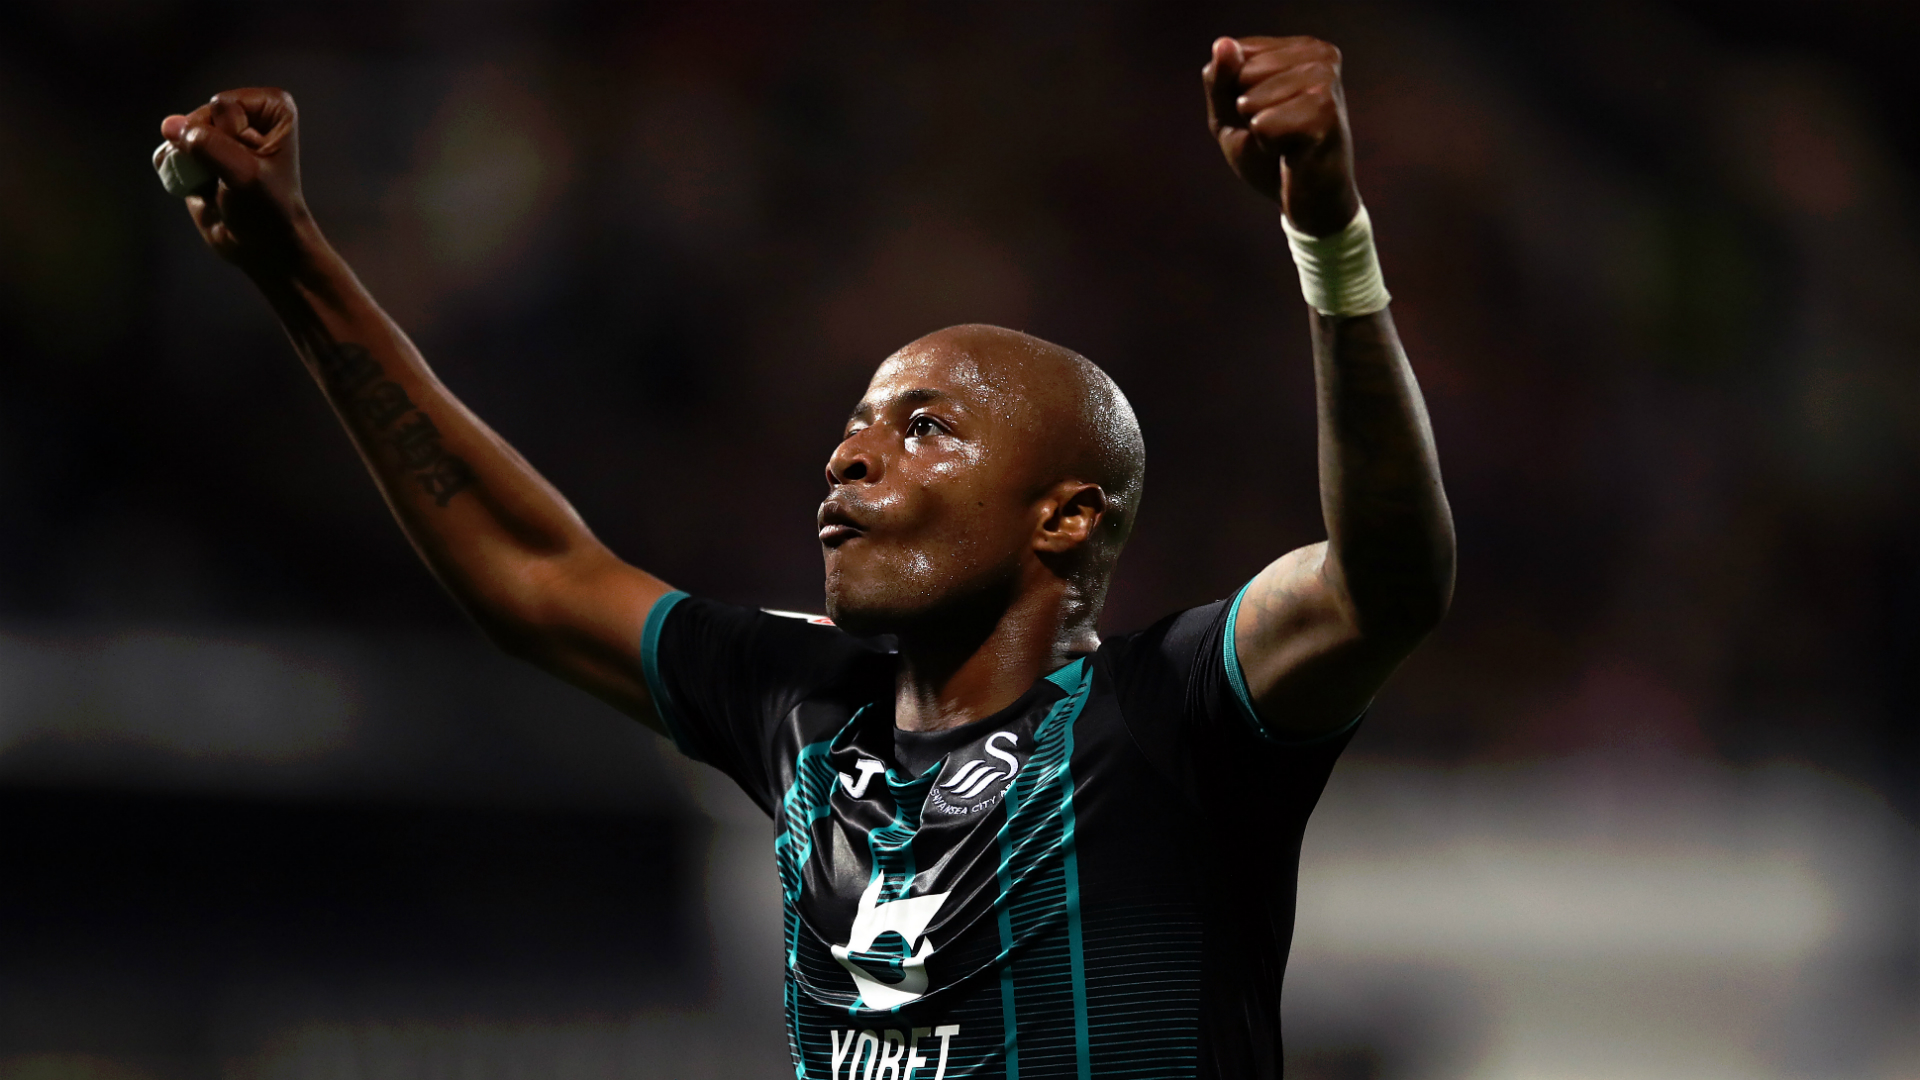 Andre Ayew scores and assists, Adeniran debuts as Swansea City beat Wycombe Wanderers